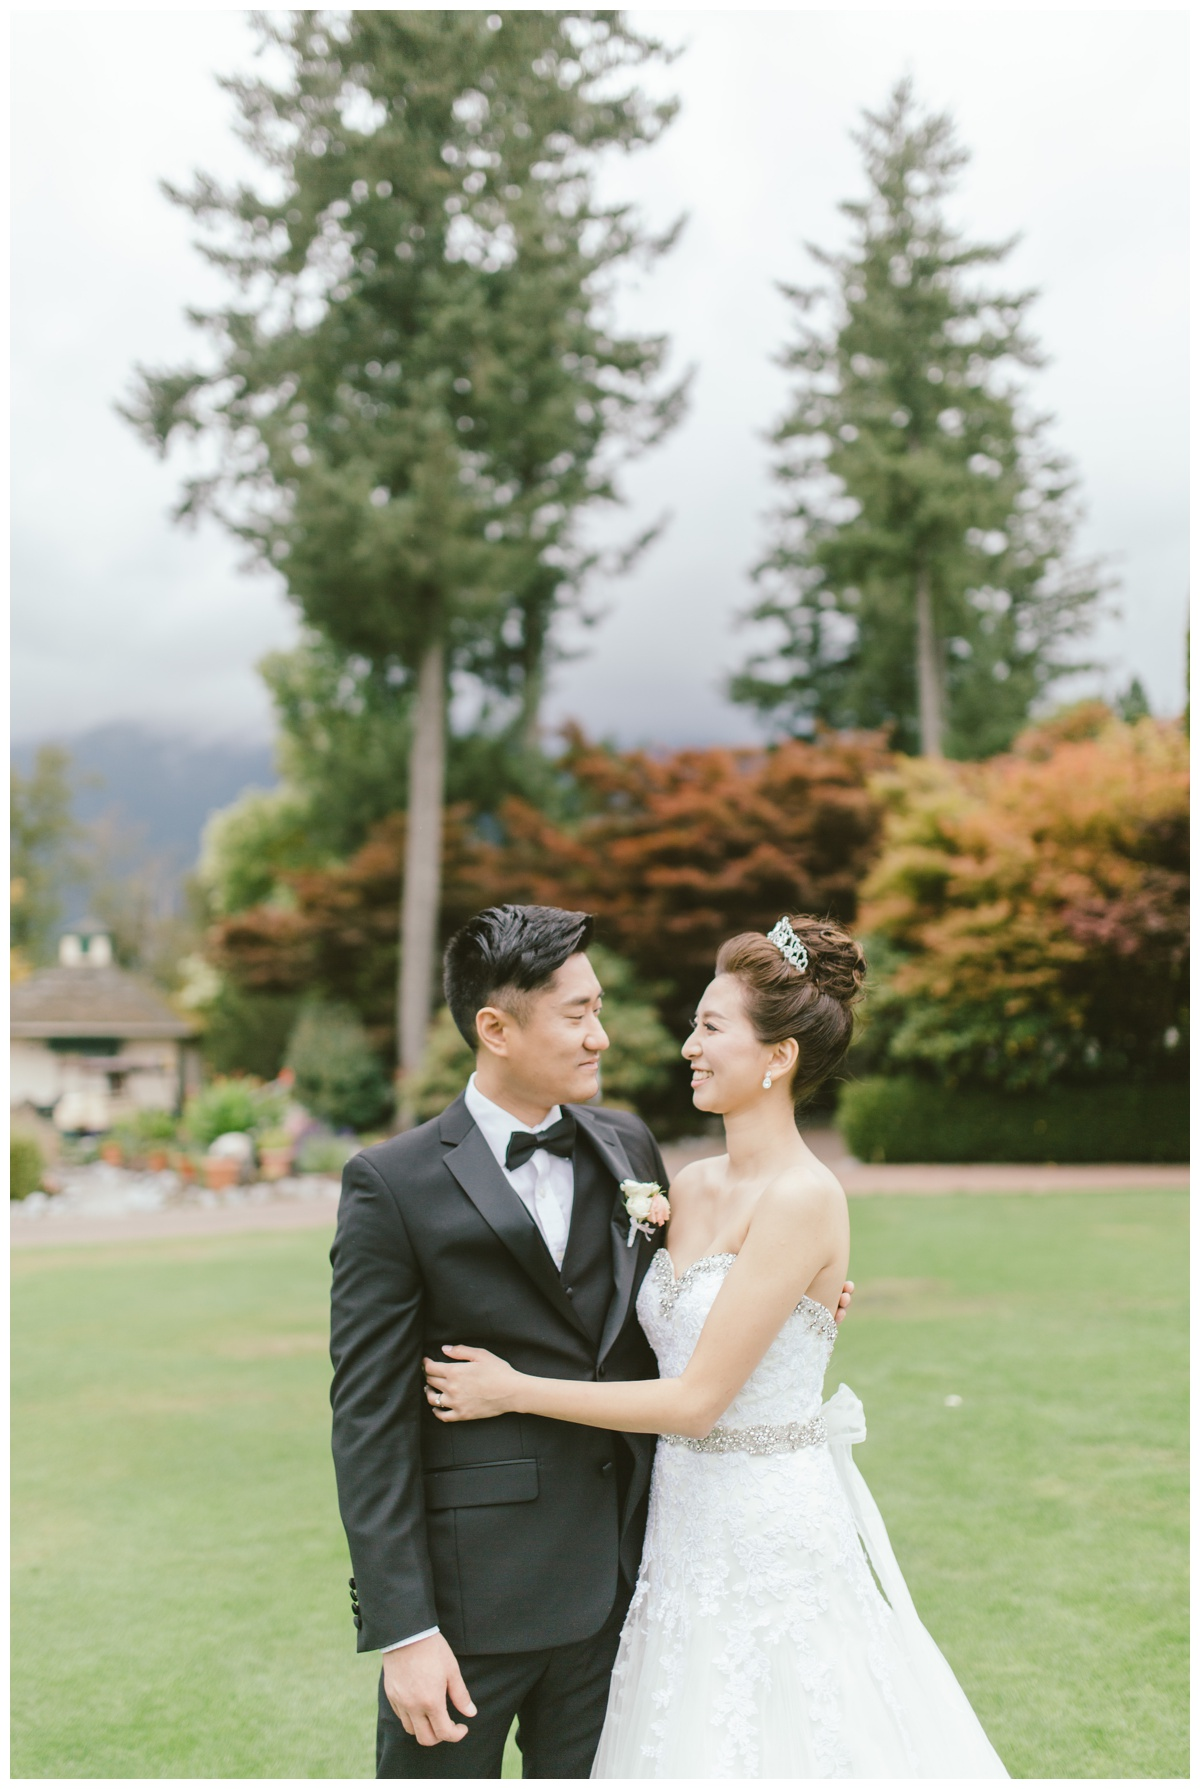 Mattie C. Fine Art Wedding Prewedding Photography Vancouver and Hong Kong 381.jpg